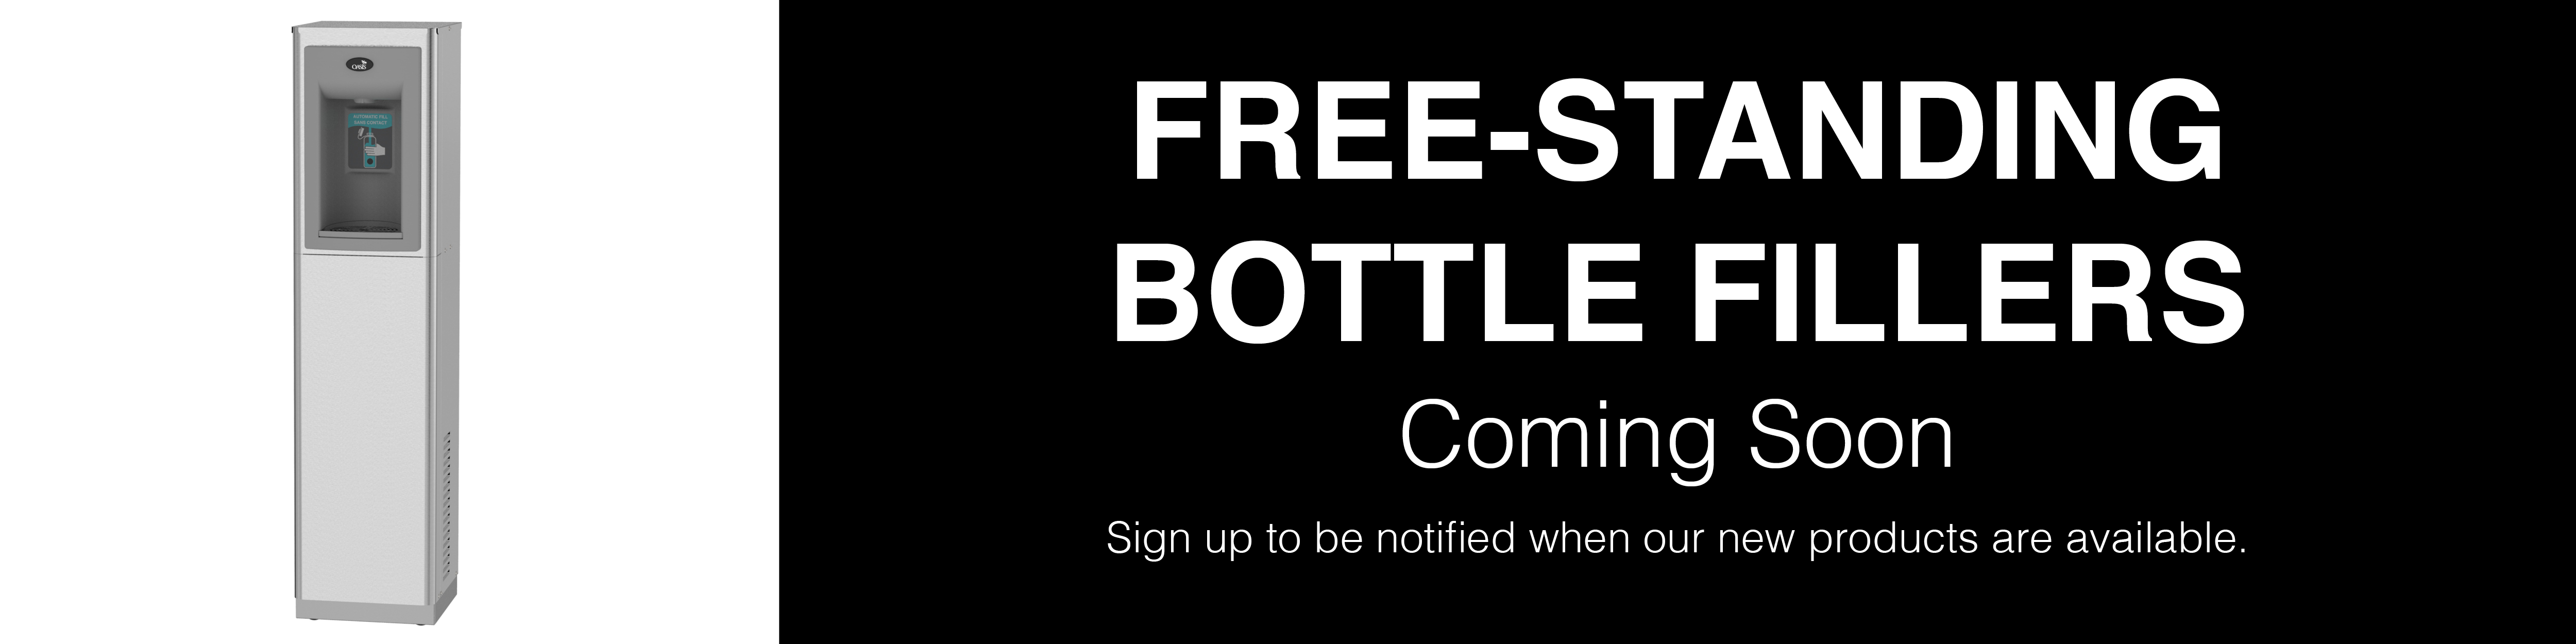 Coming Soon Bottle Fillers